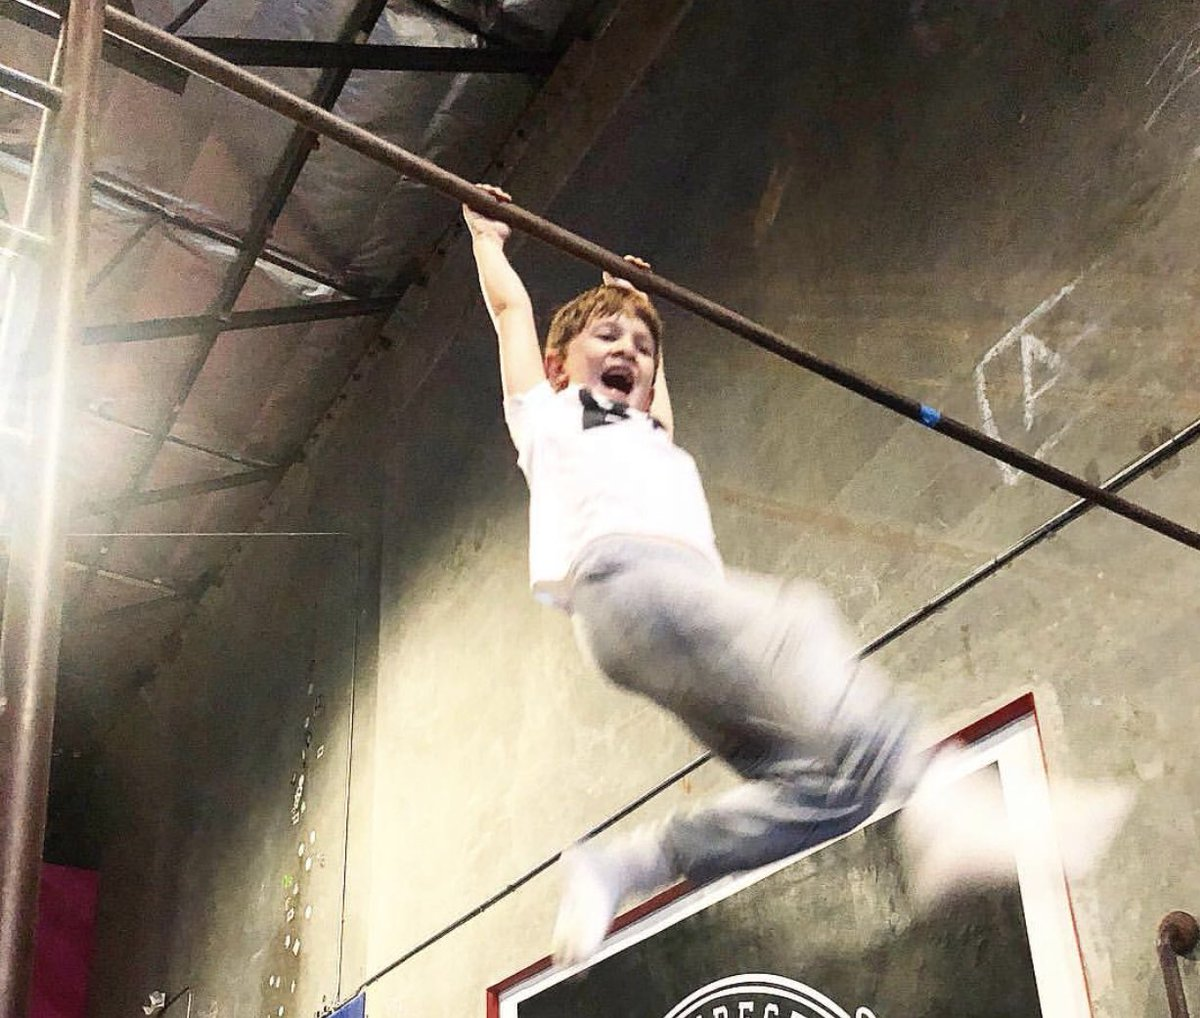 """to my boy...all that energy, so vital"" #ablaze ????????????????????????????#ever #iloveyousomuch #freerunning #parkour #sostrong https://t.co/et92Mtpg1F"